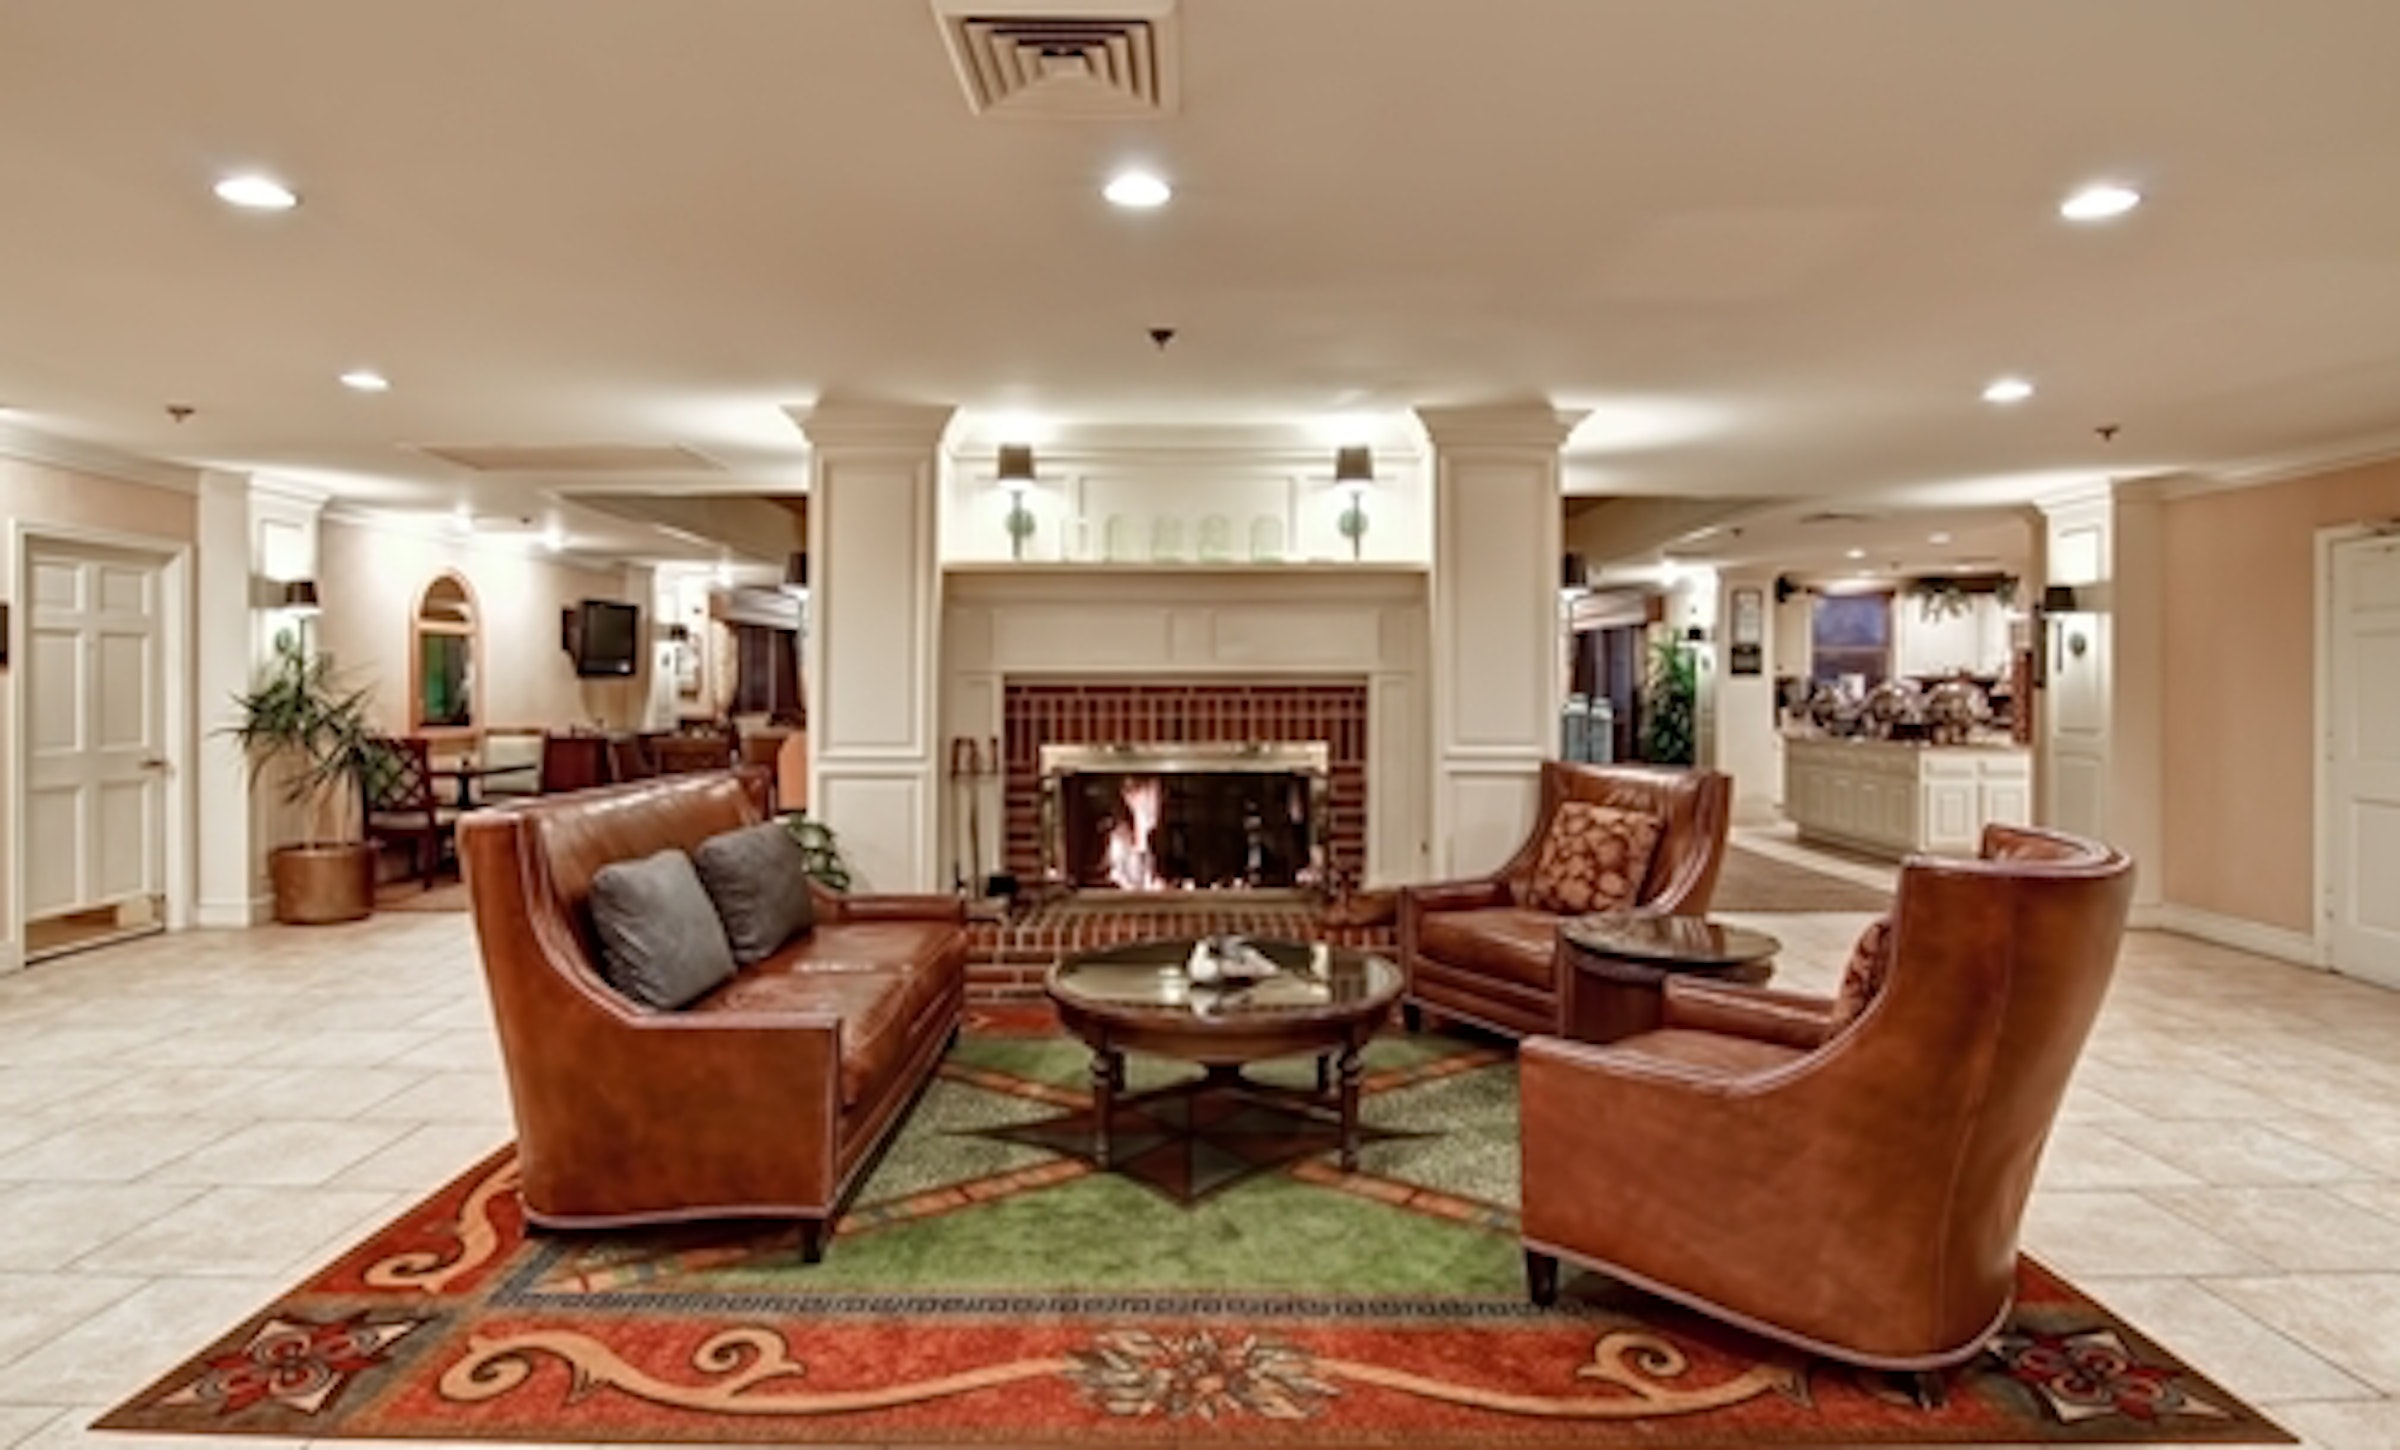 Homewood Suites by Hilton Dallas Addison in Beyond Dallas